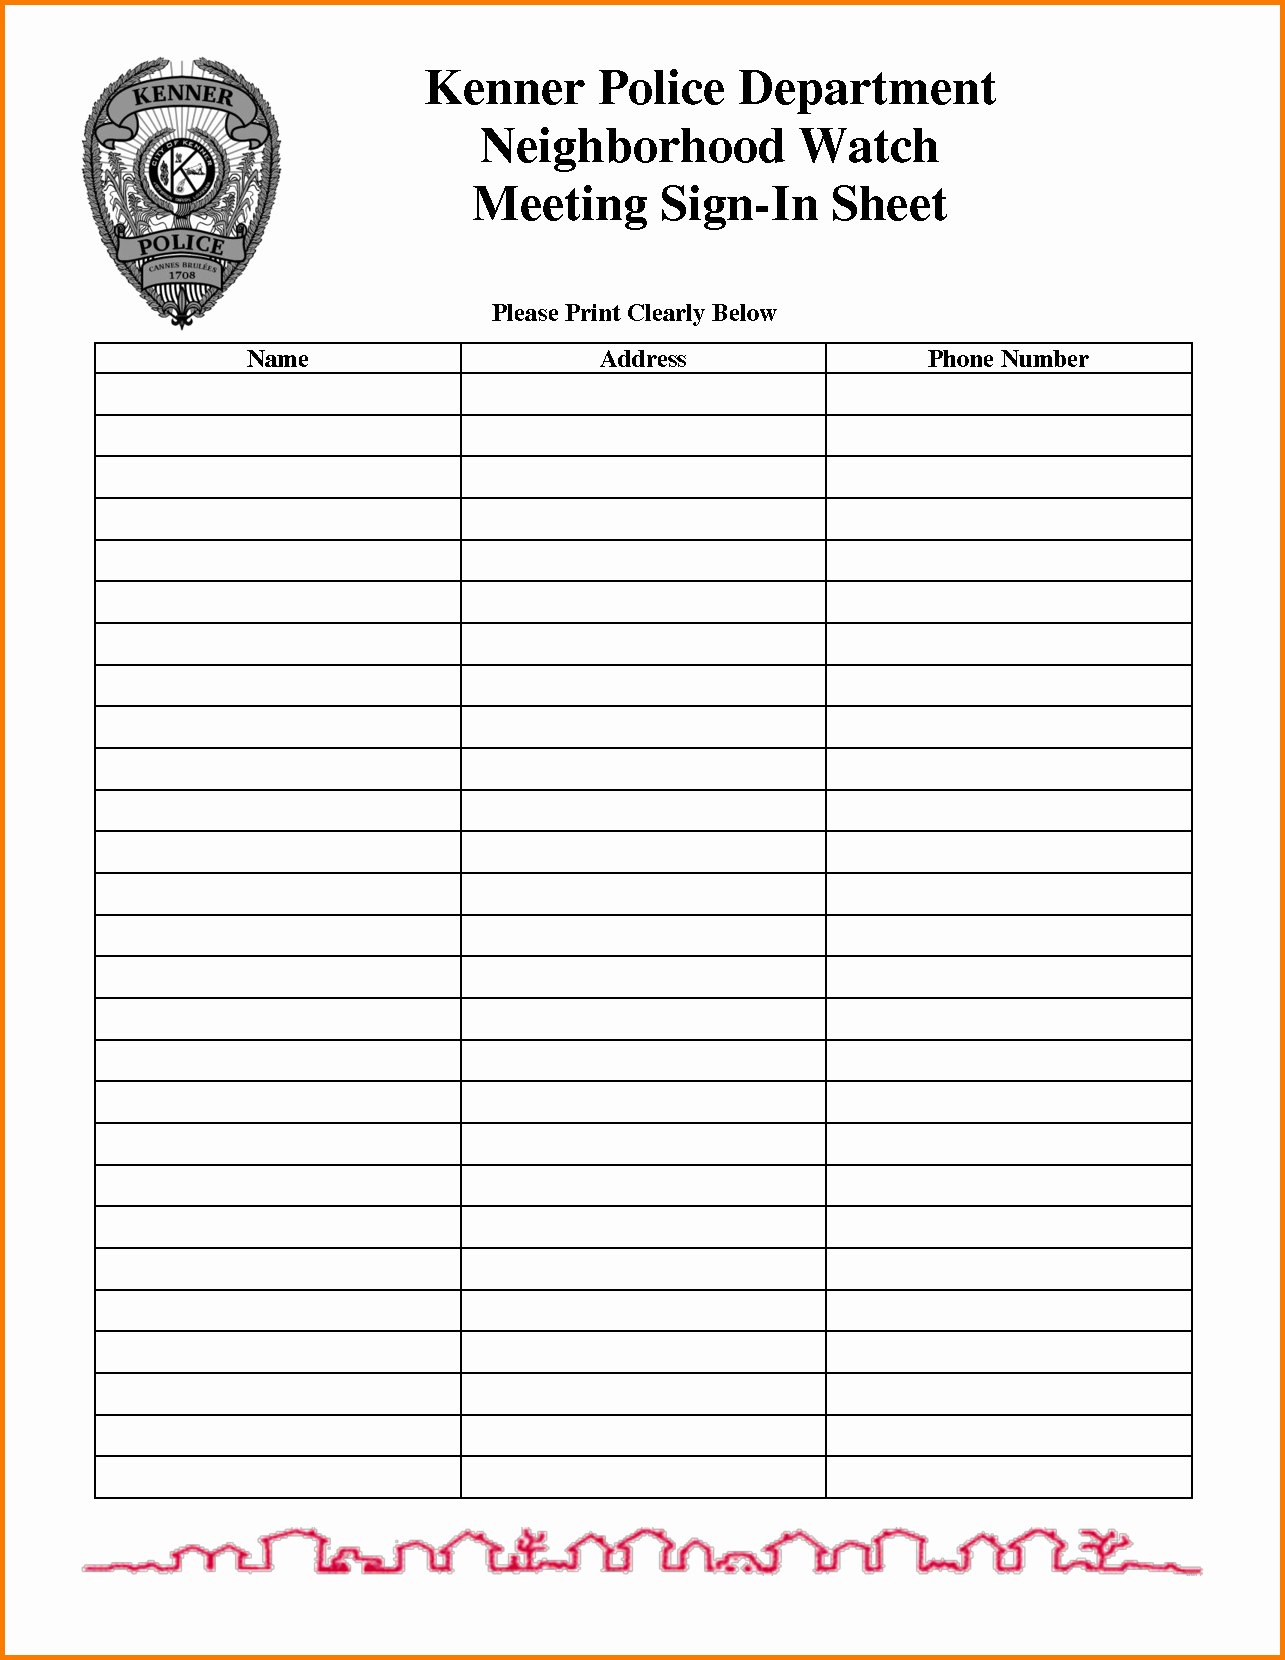 Printable Meeting Sign In Sheet Luxury Meeting Sign In Sheet Template